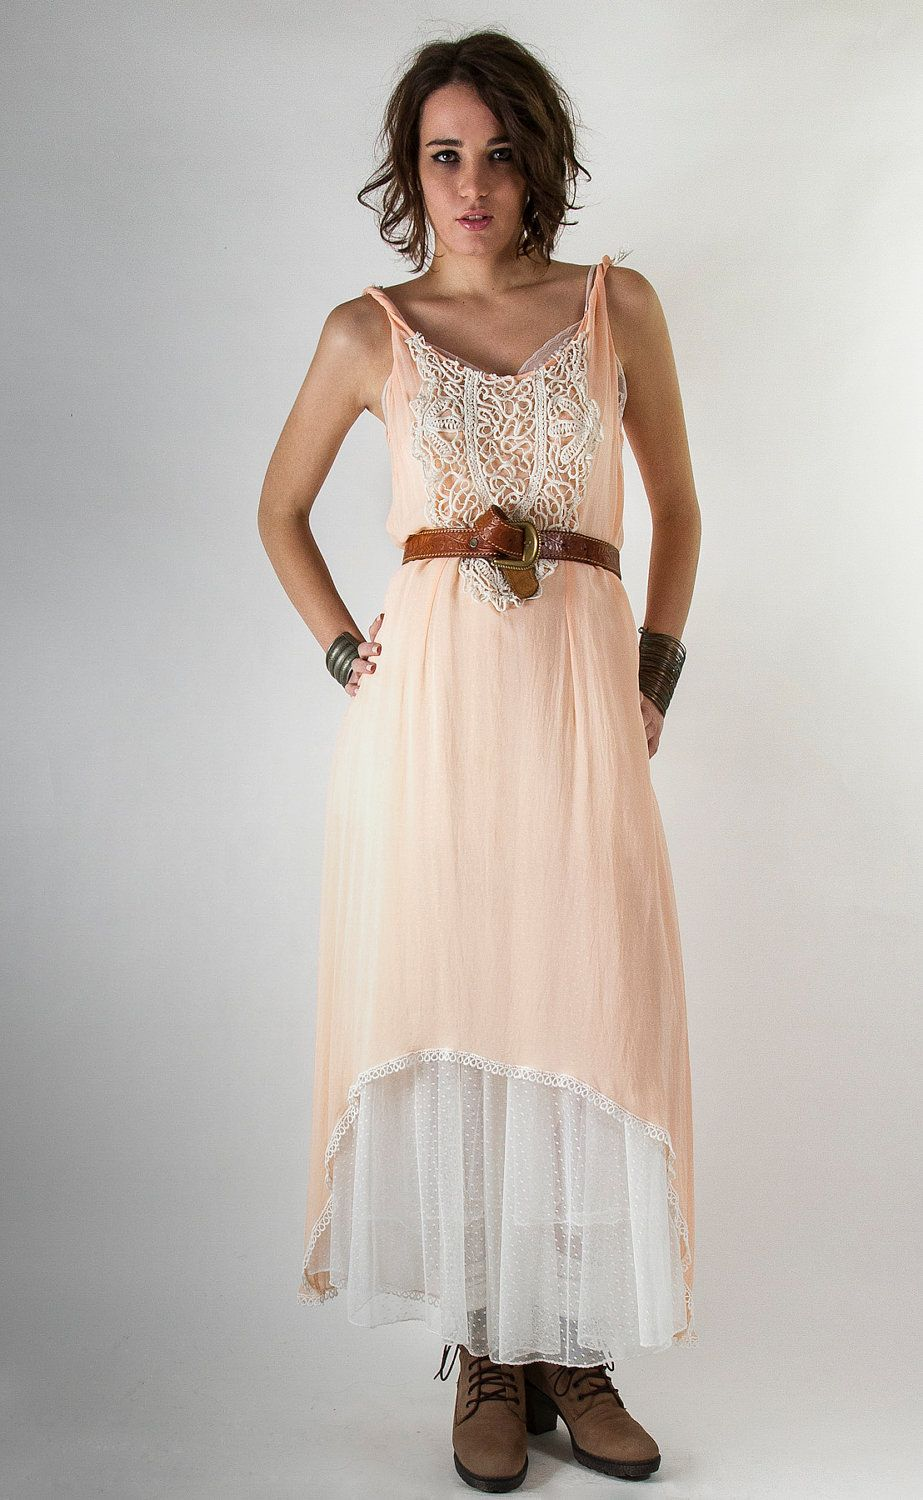 Peach rose georgette hilow dress with white vintage hand embroidery